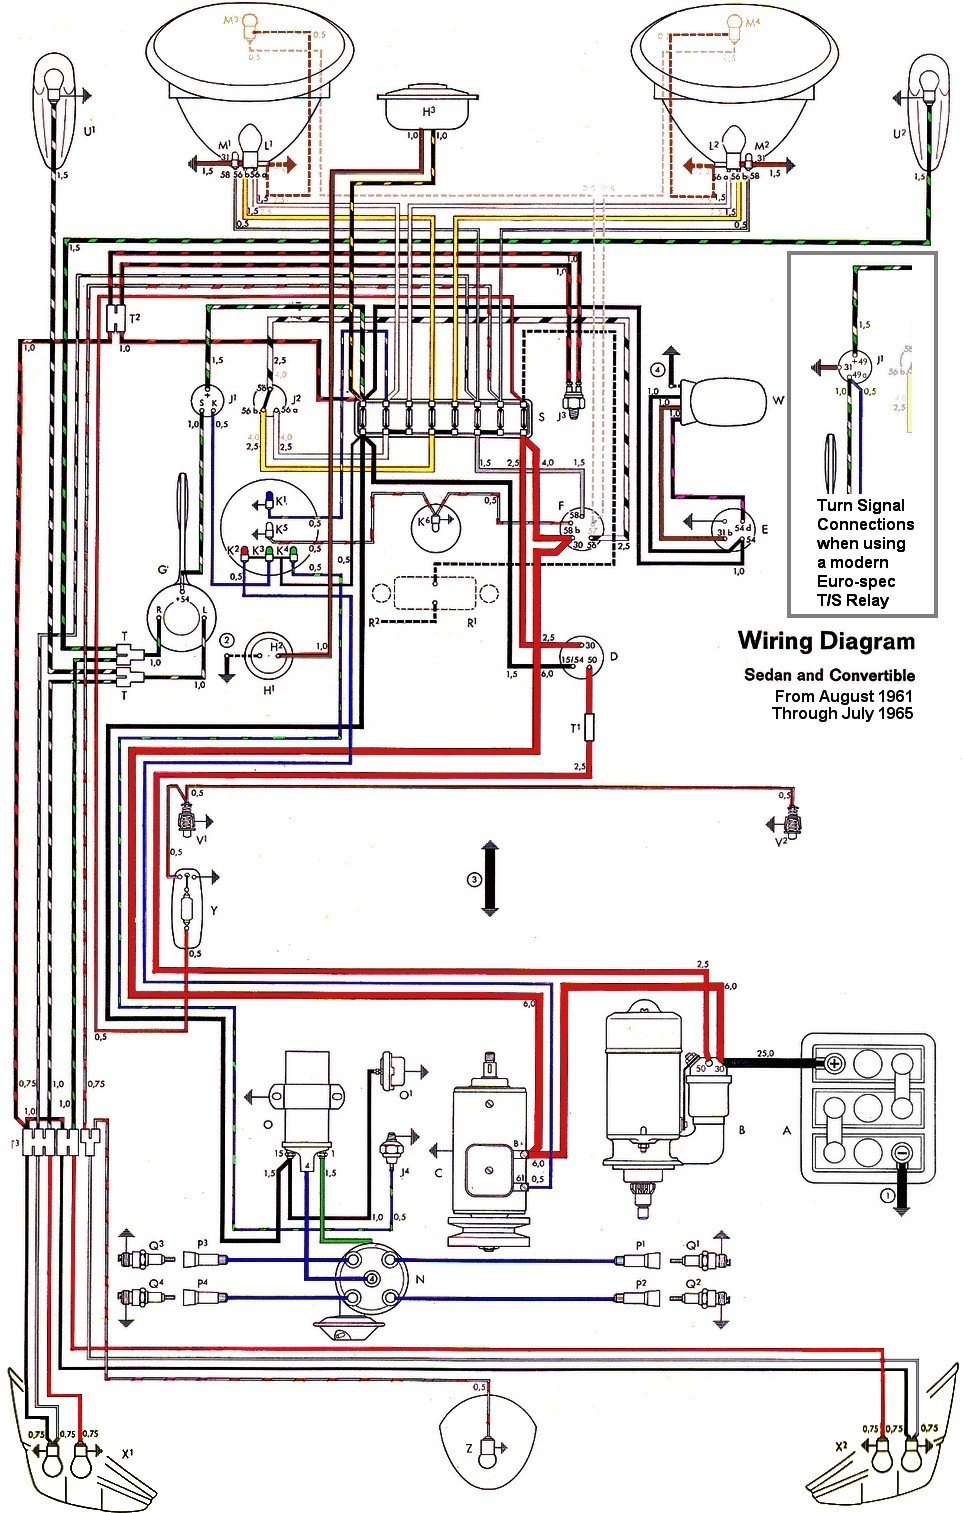 bug_62 65withinset thesamba com type 1 wiring diagrams 1973 vw beetle fuse box diagram at crackthecode.co